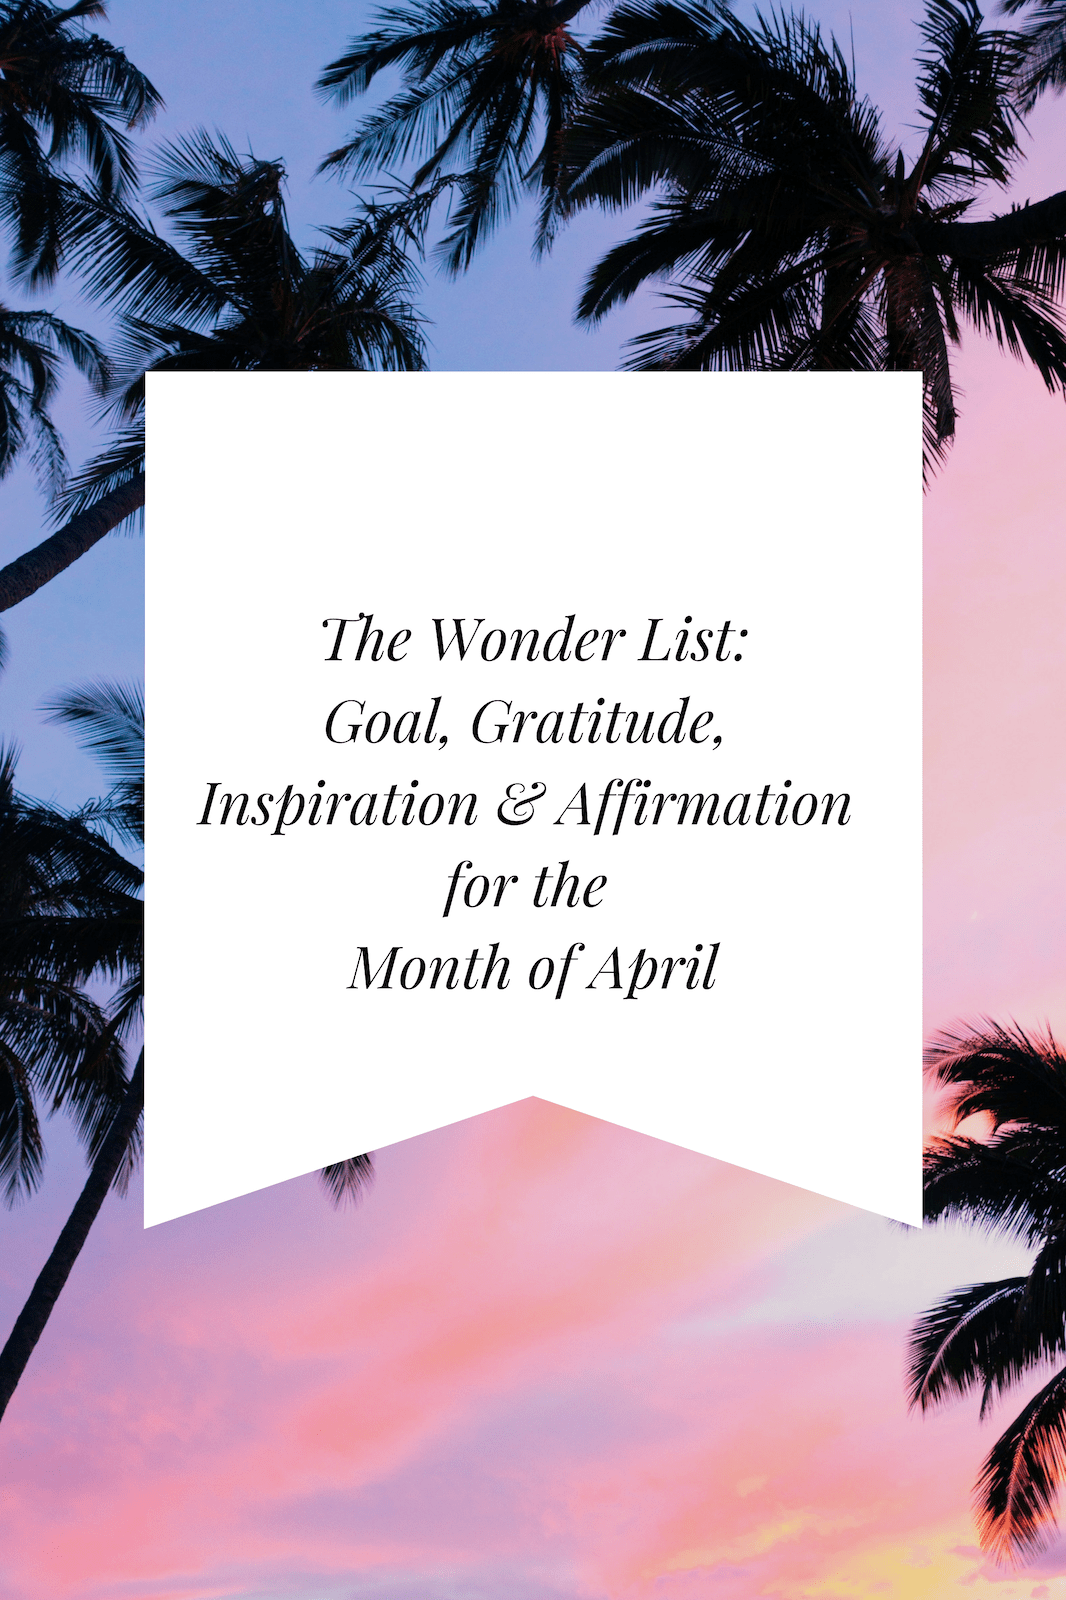 The Wonder List April Image